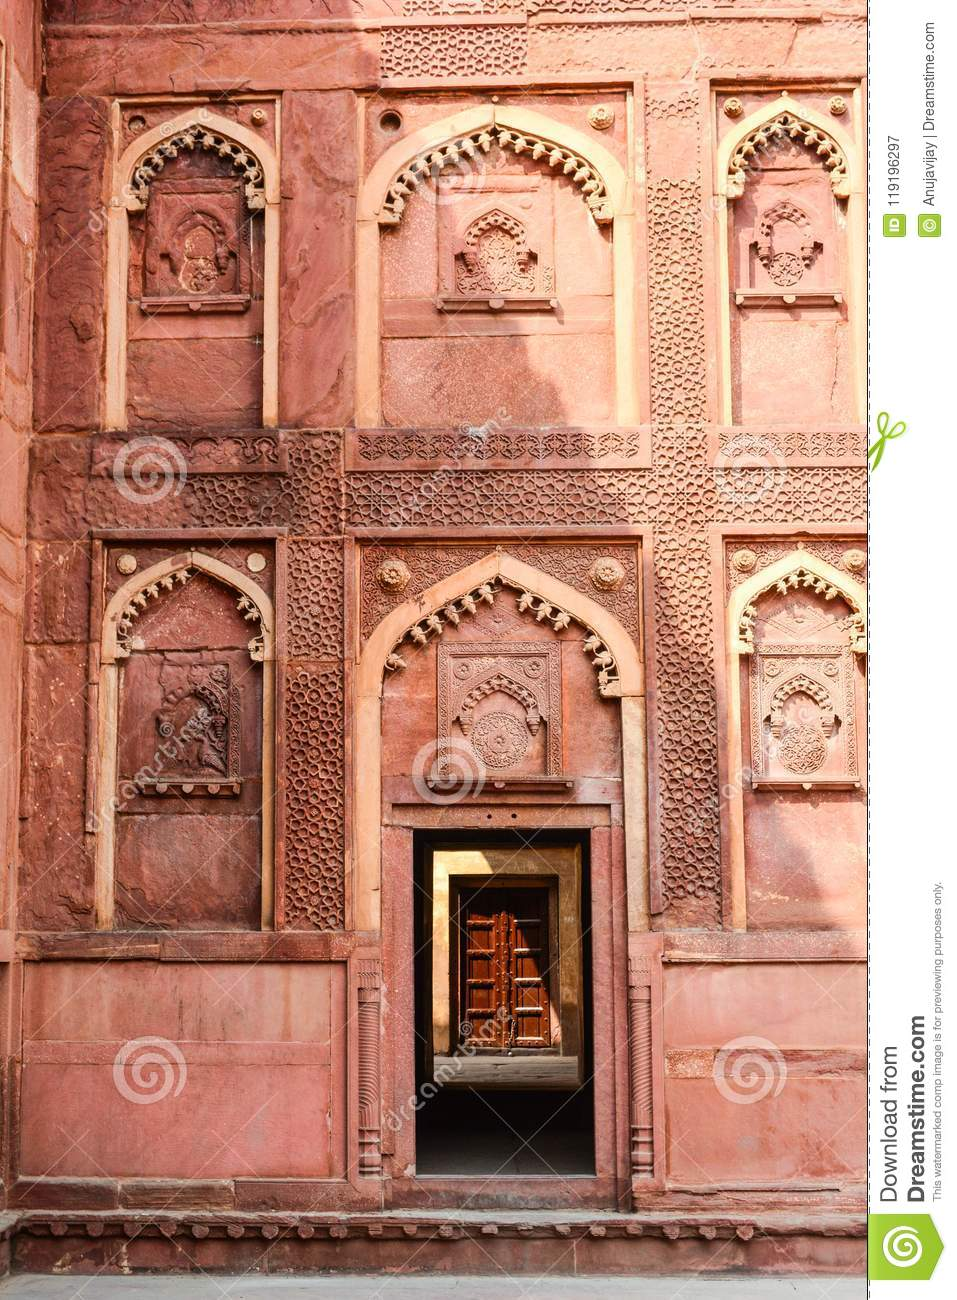 Intricate carvings decorate the Agra Fort in Agra, India